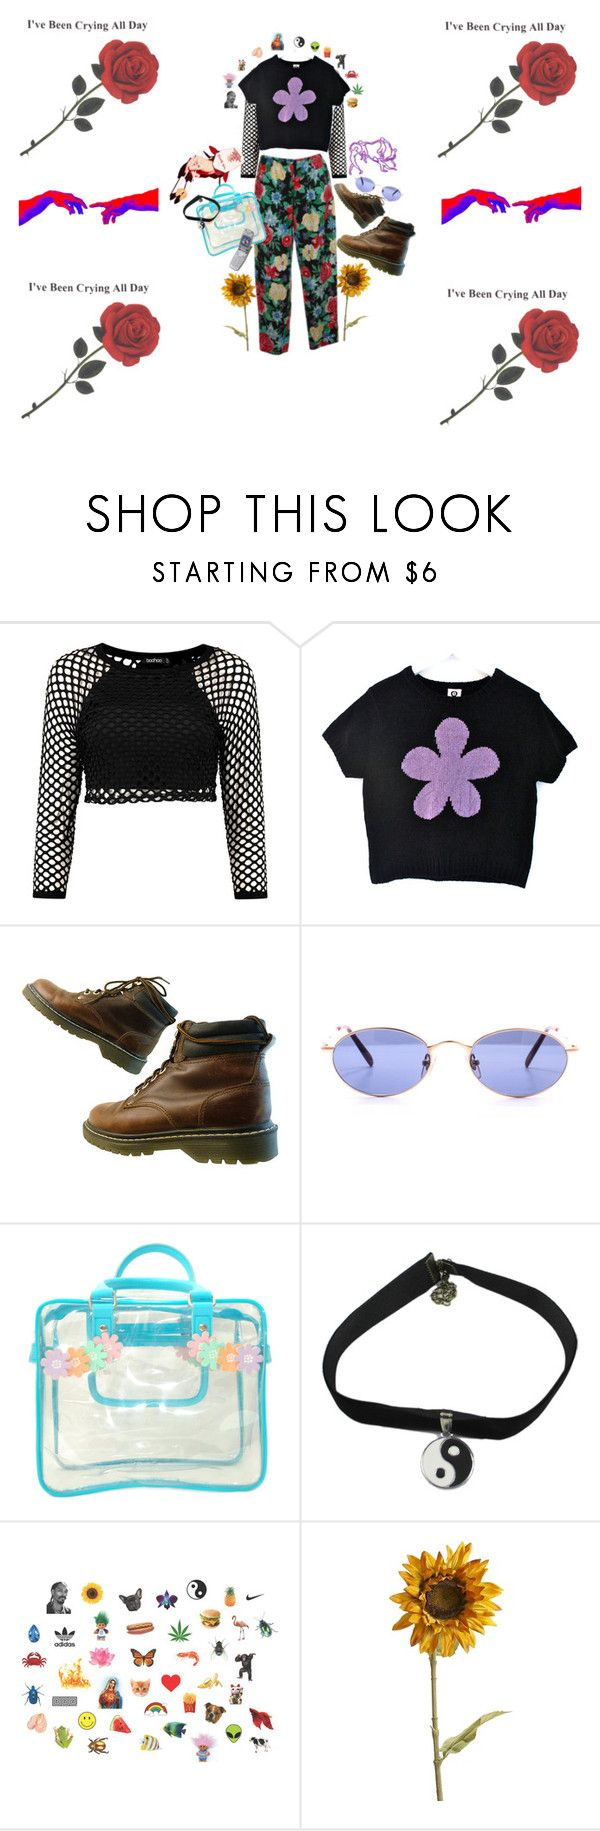 """HARRY STLES' ALBUM JUST CAME OUT"" by radc00l ❤ liked on Polyvore featuring Gucci and Pier 1 Imports"